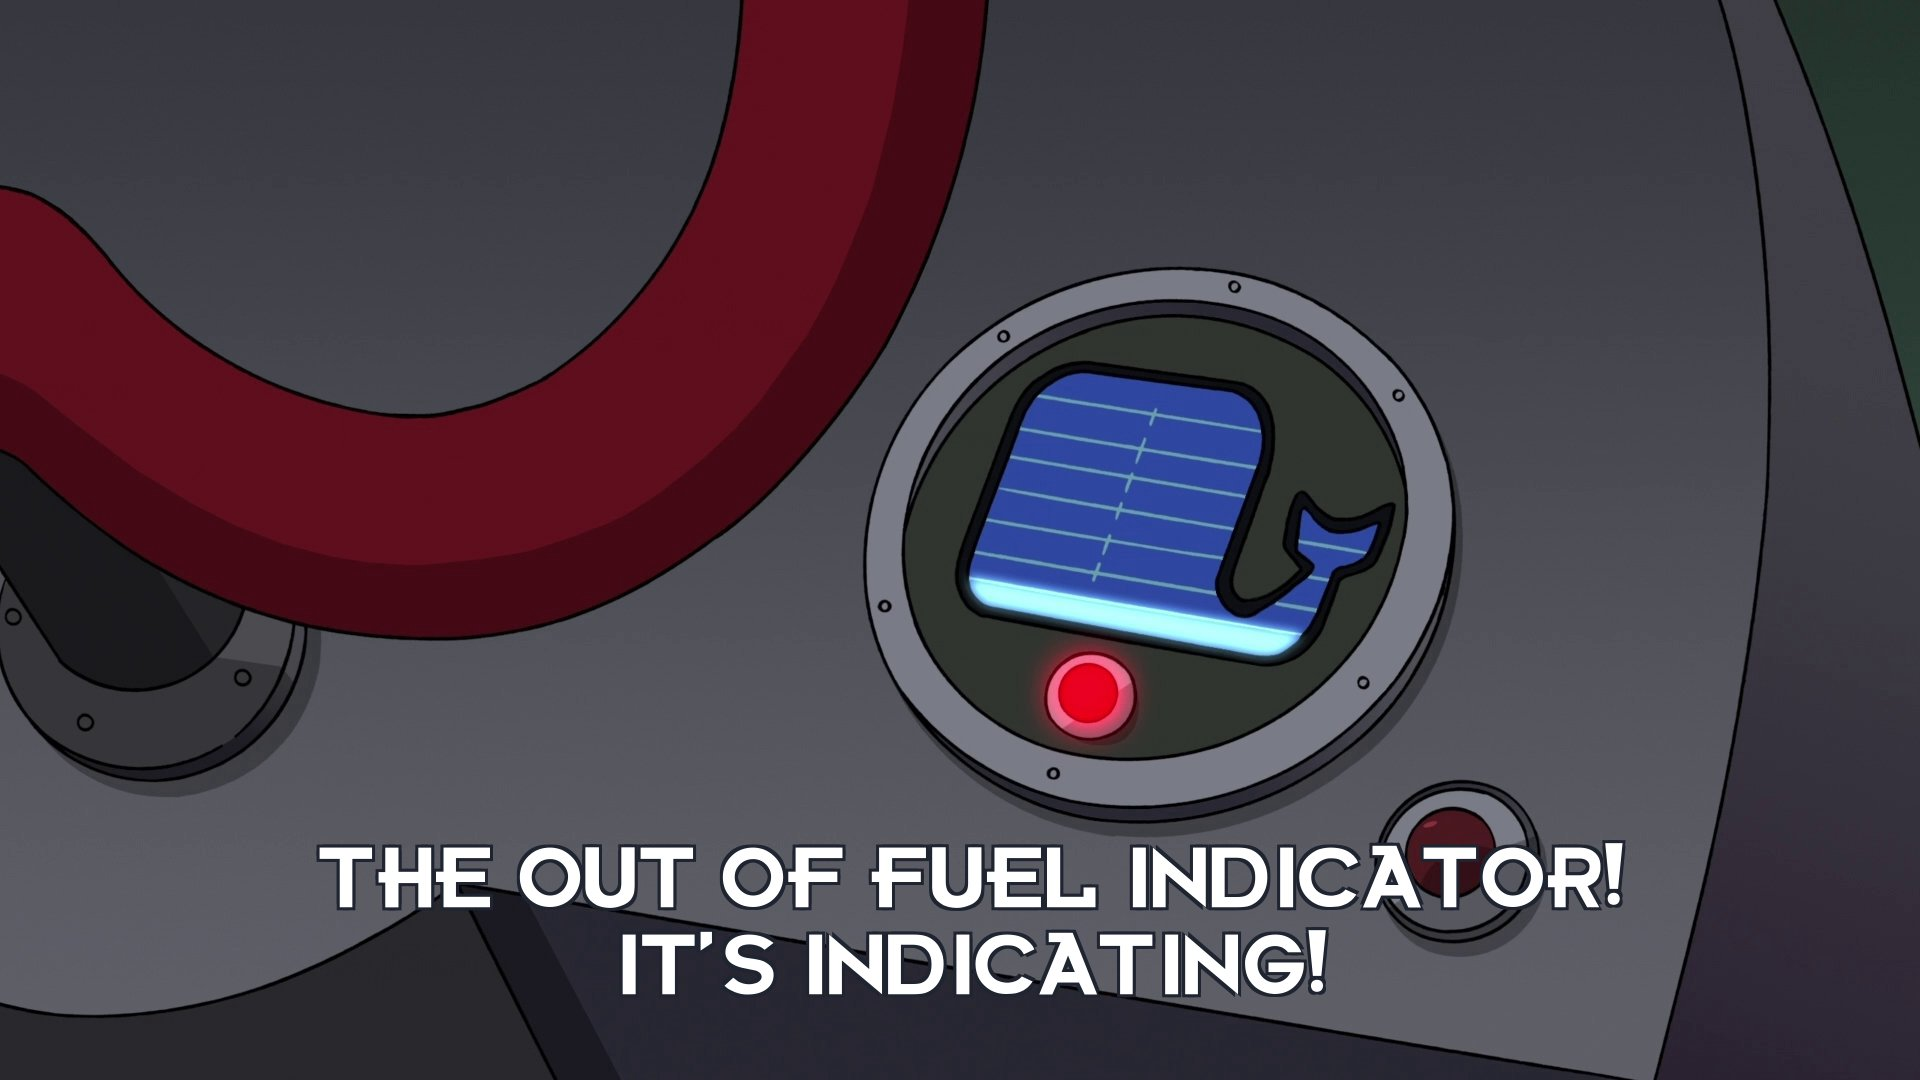 Turanga Leela: The out of fuel indicator! It's indicating!